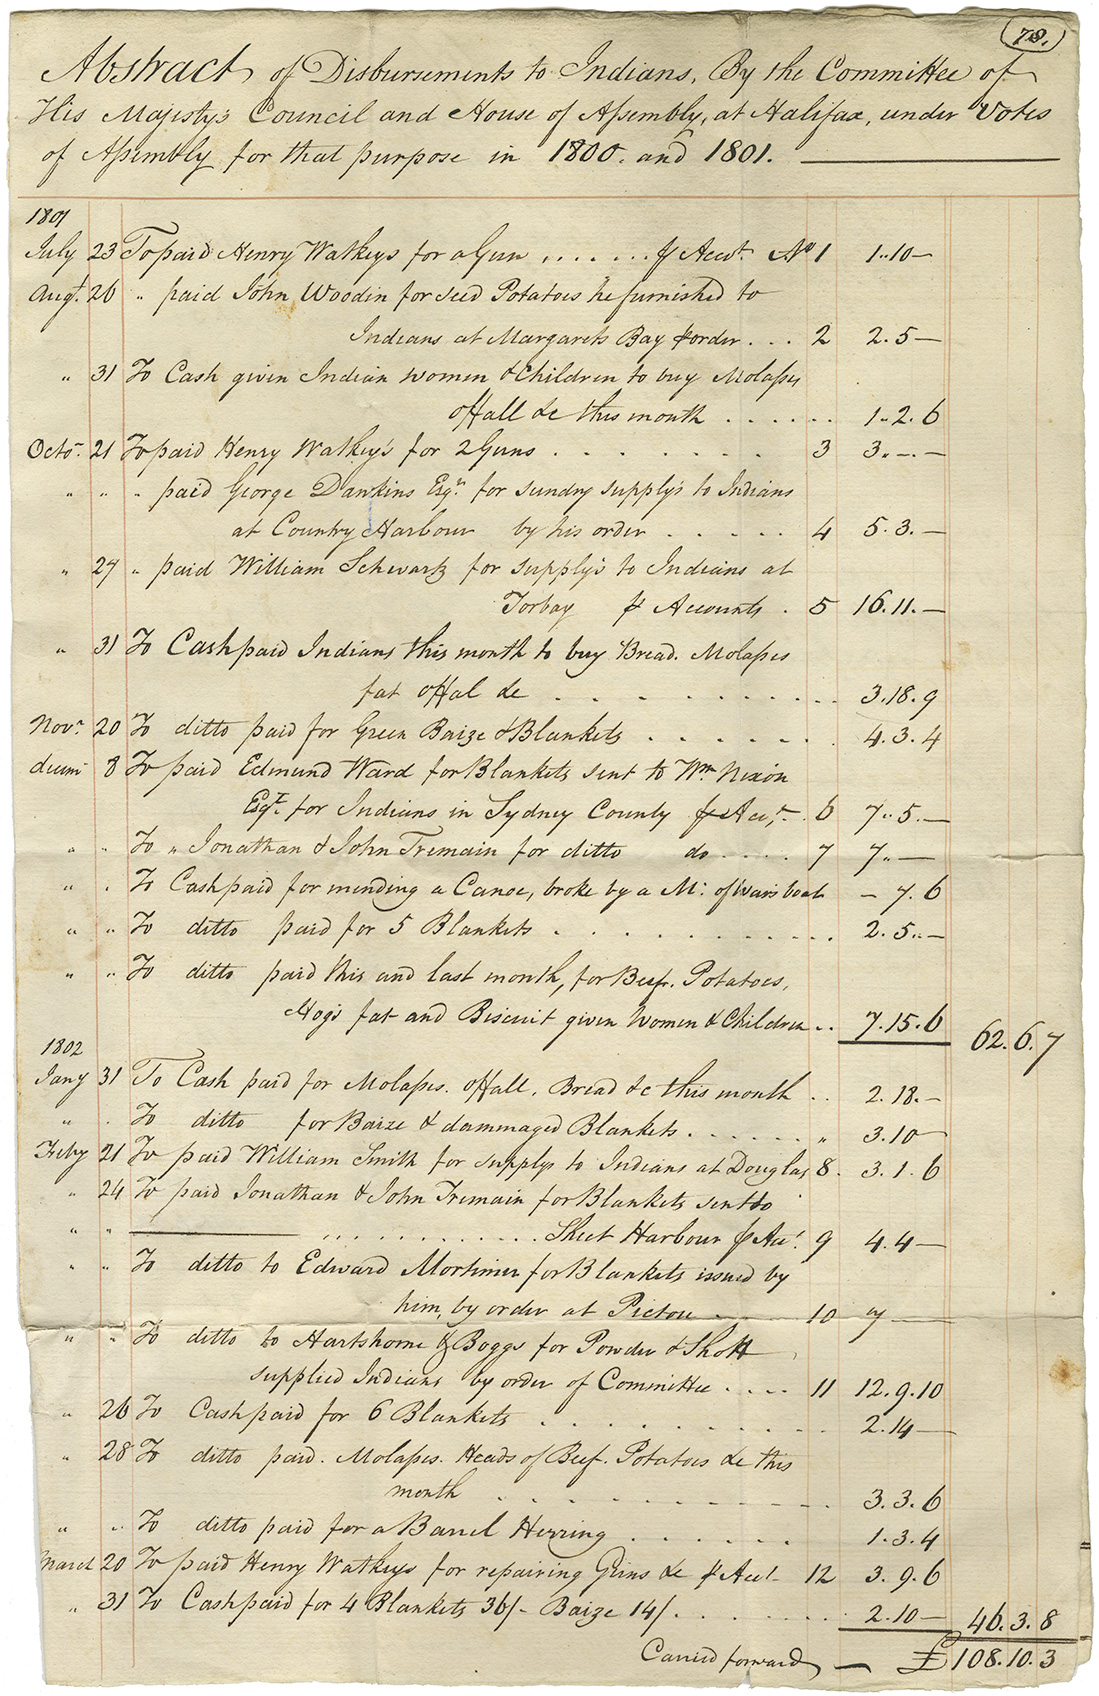 Mikmaq : Abstract of disbursements to Mikmaq by the Committee of His Majestys Council and House of Assembly. 1800 and 1801.